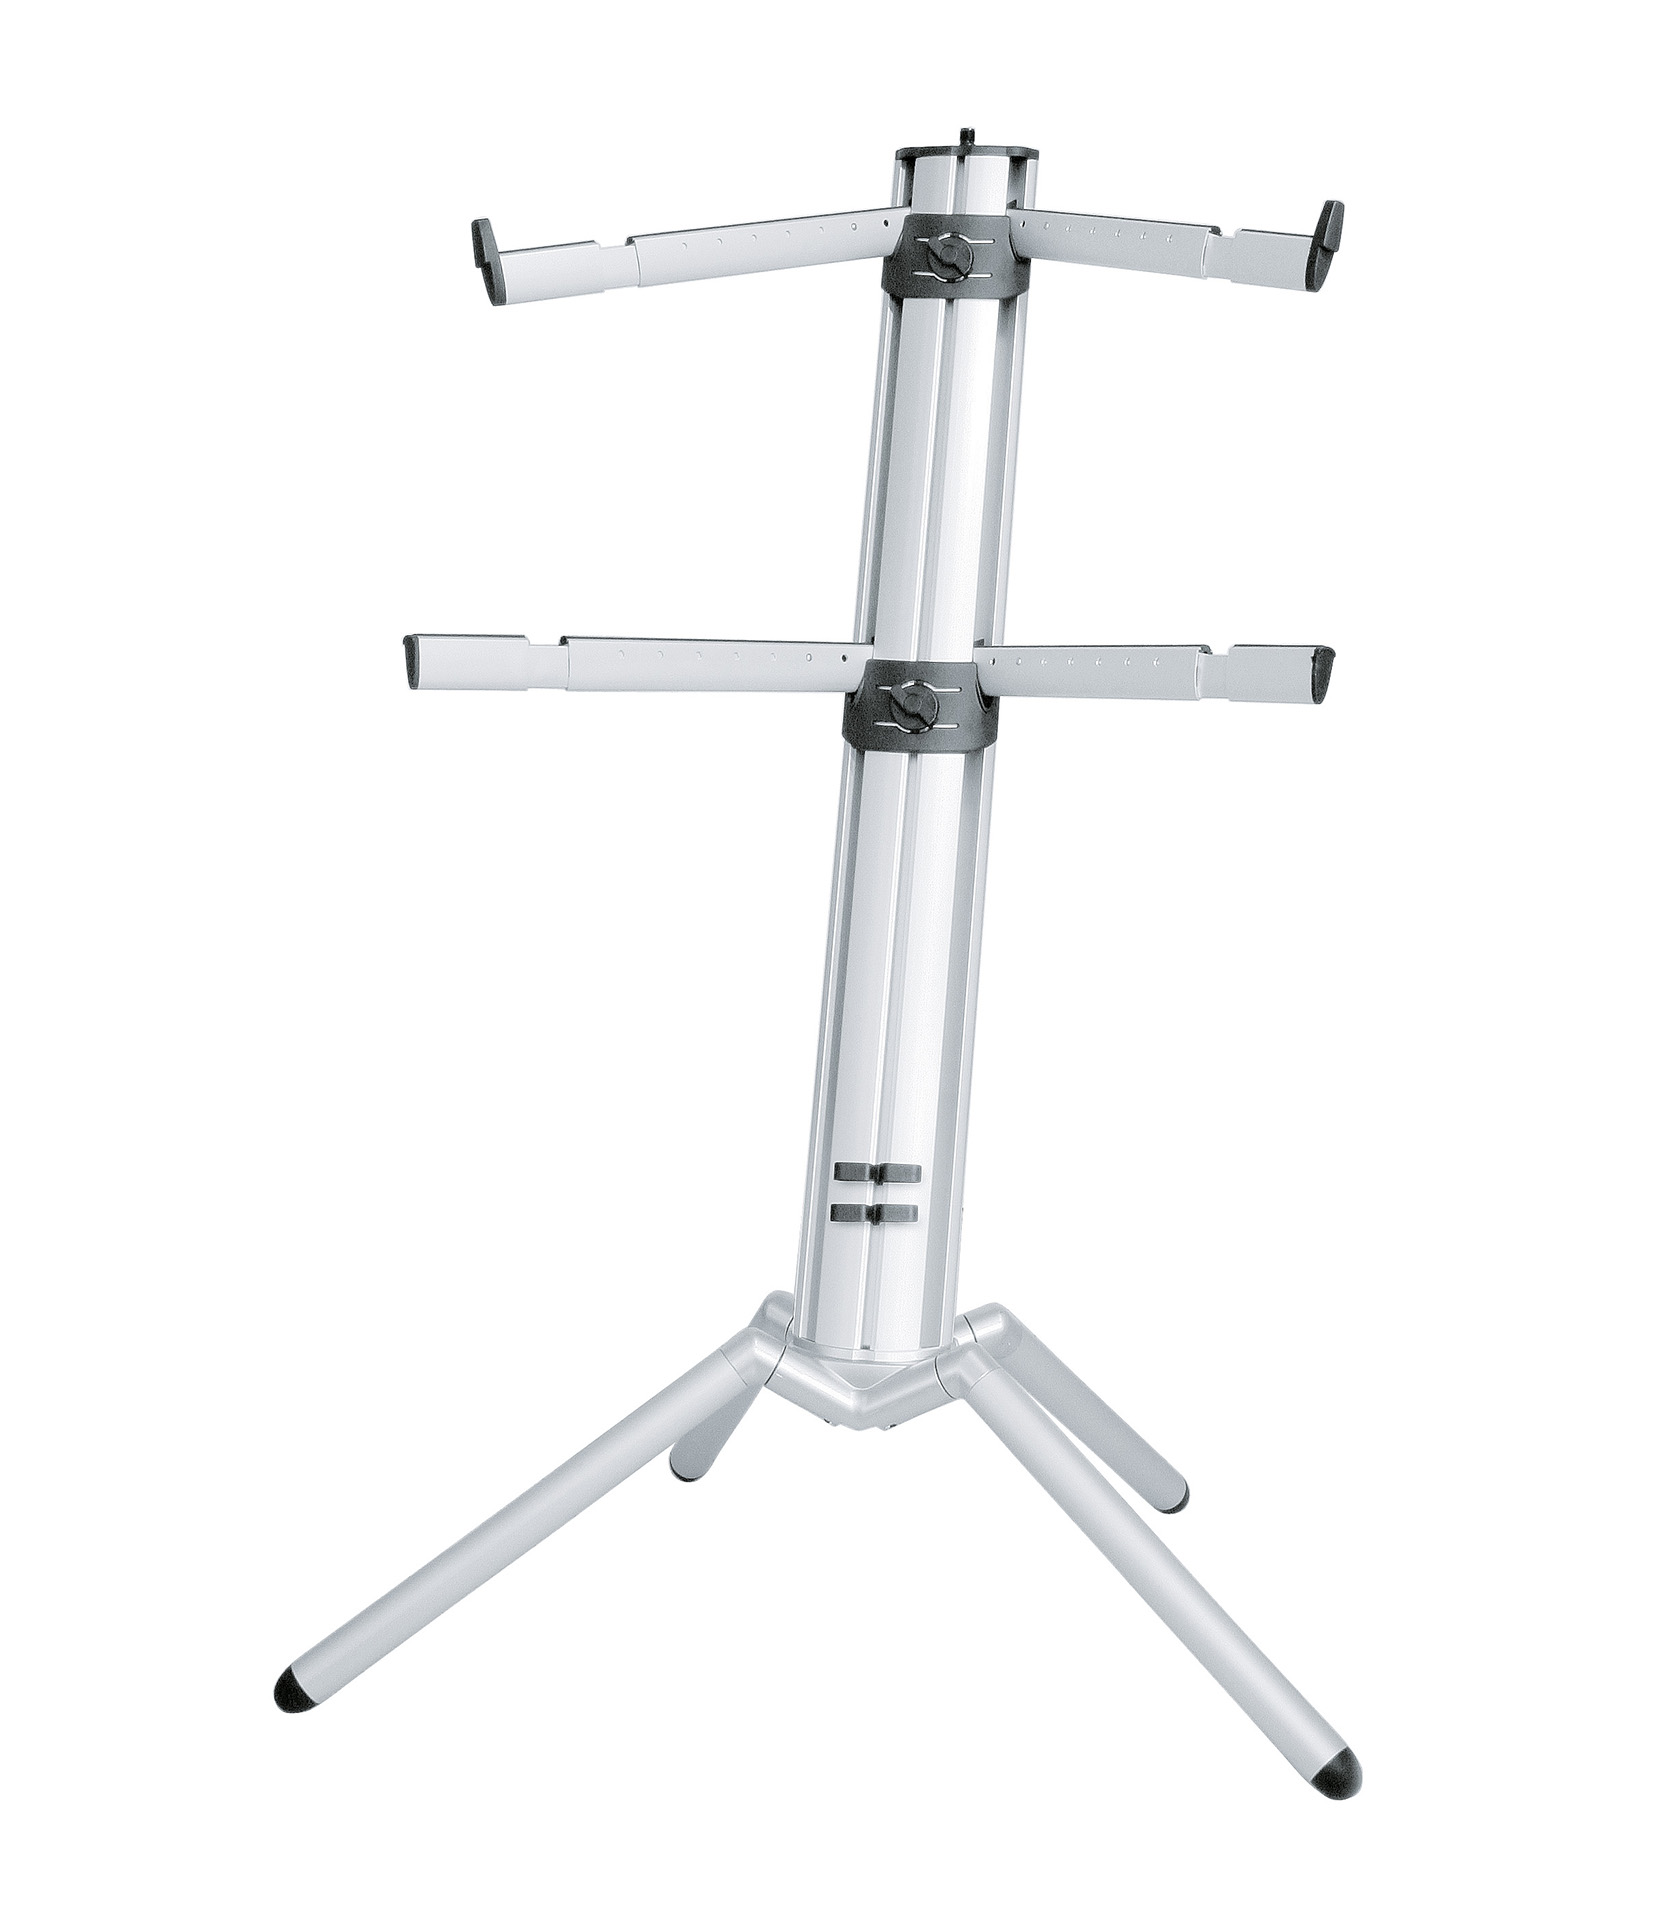 Buy K&M - 18860 000 30 Keyboard Stand Spider Pro